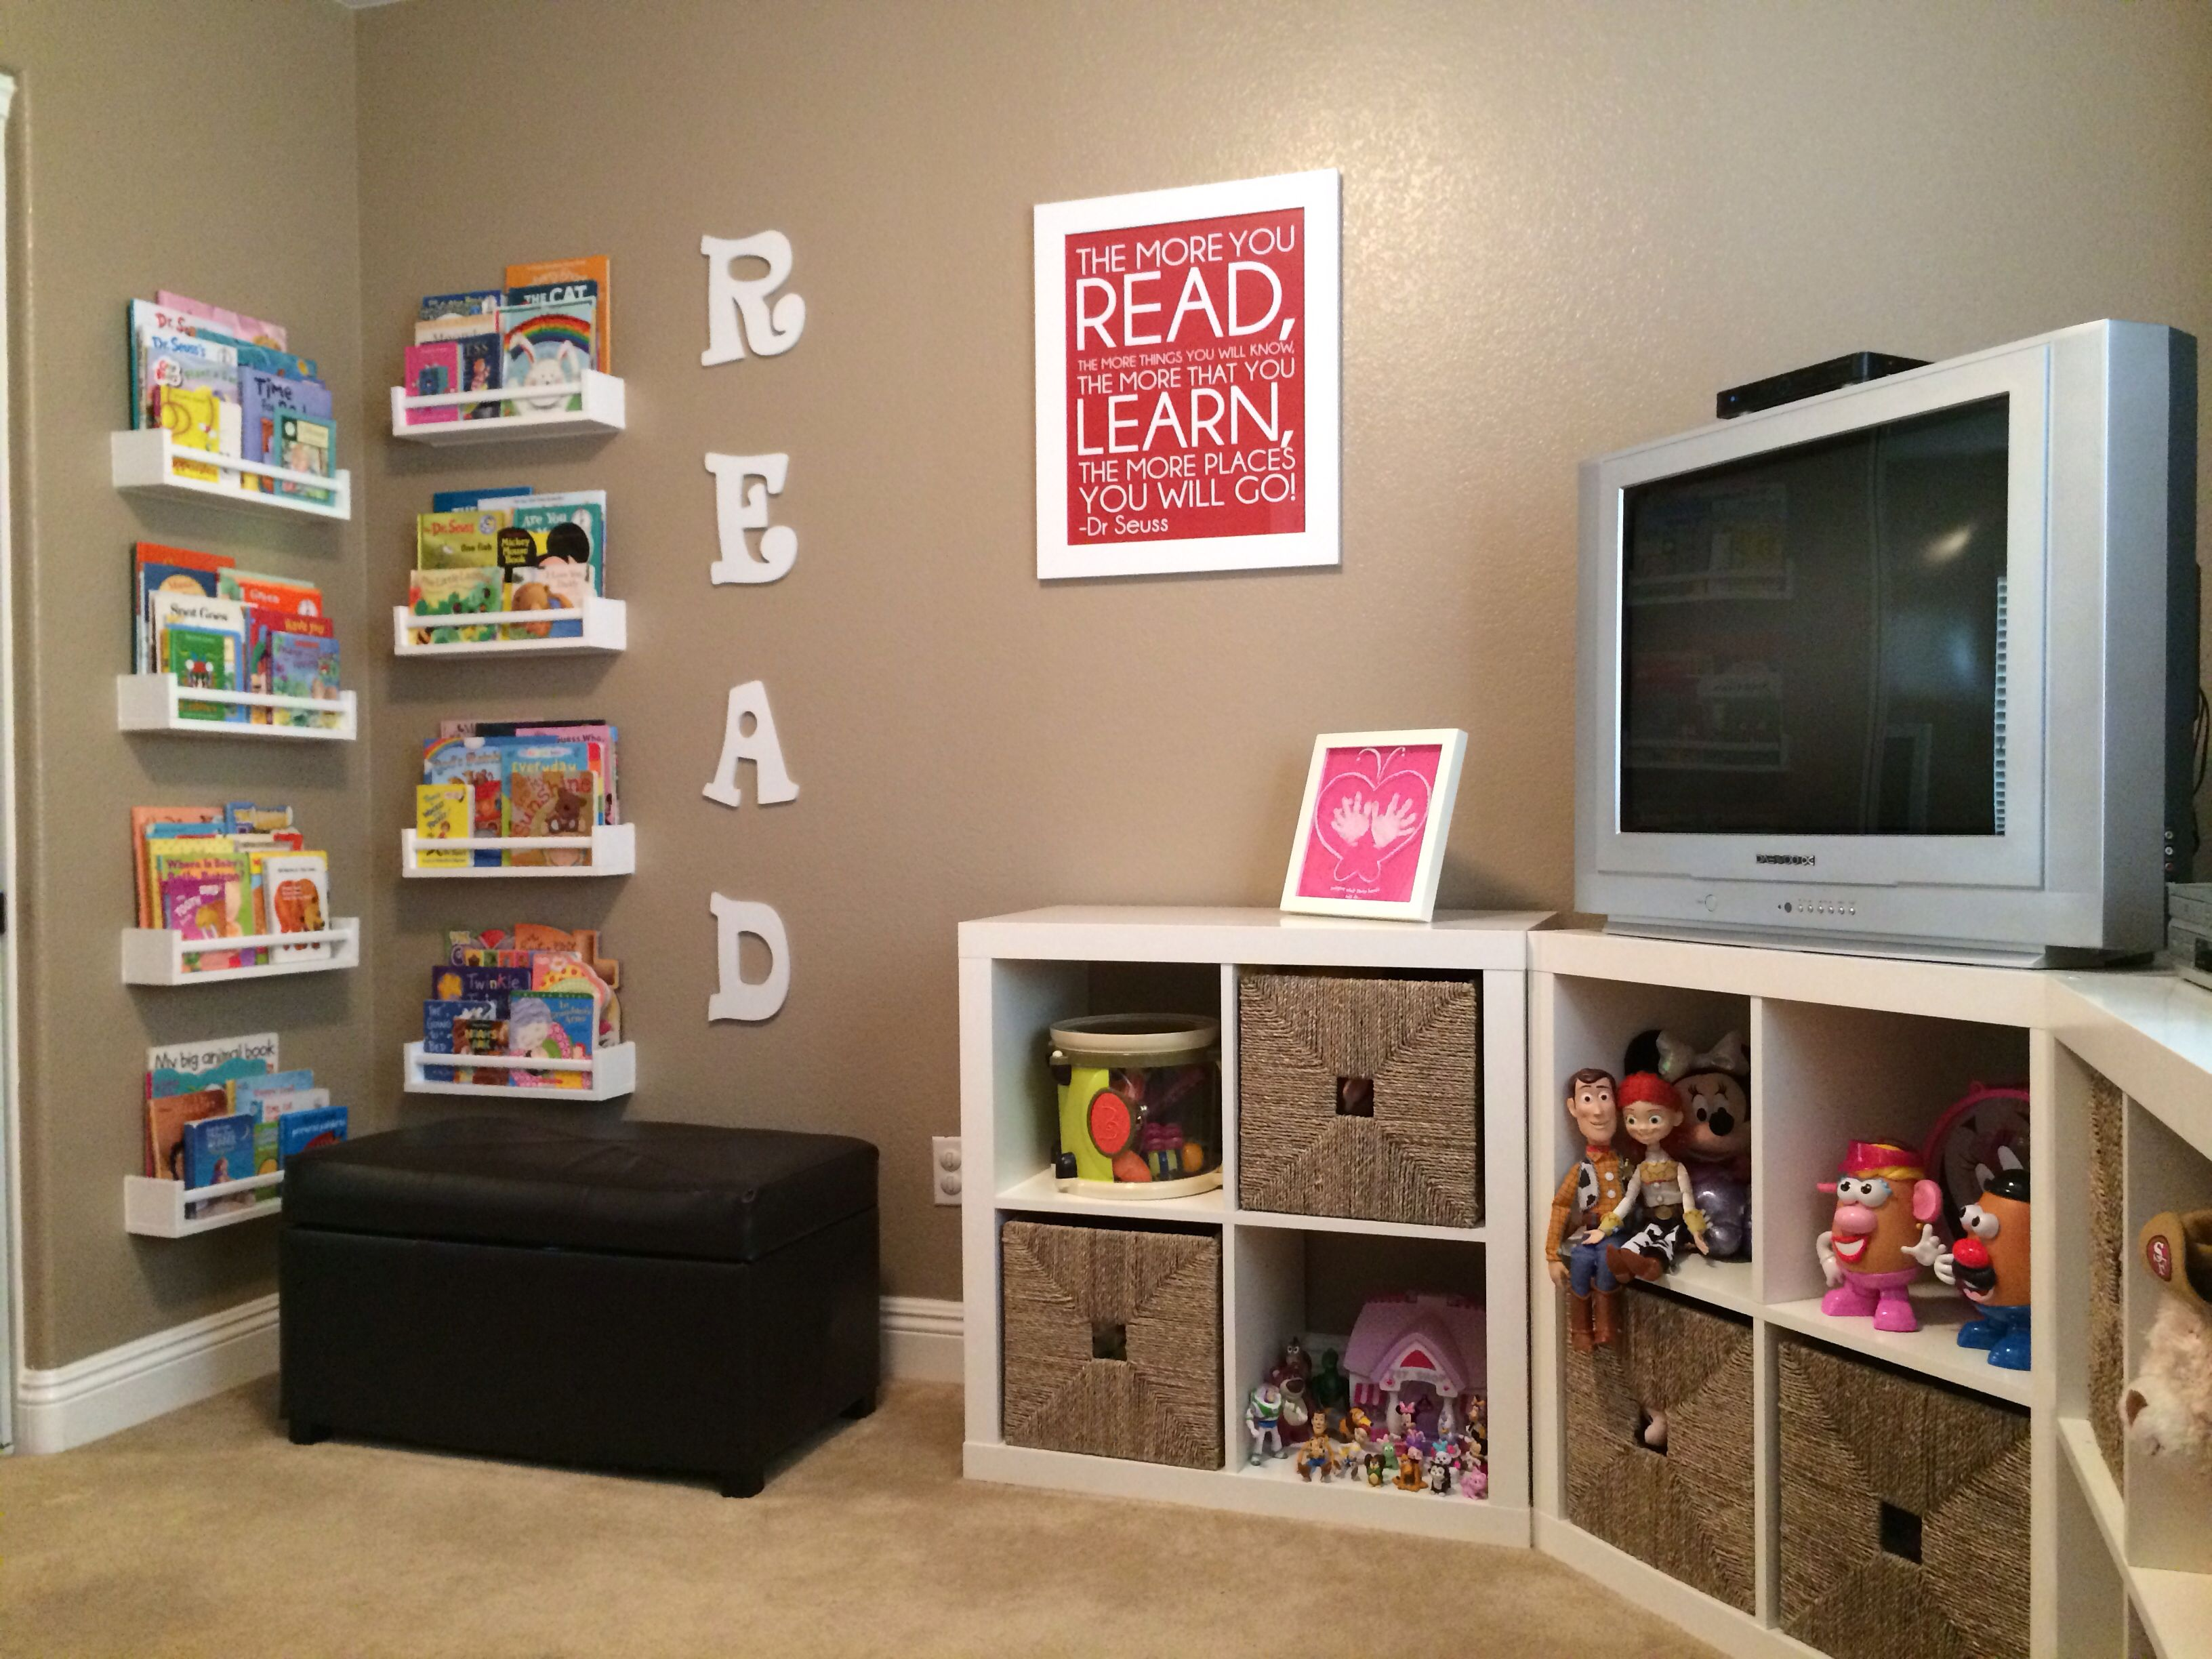 Kids Playroom With Tv playroom | kids playroom | pinterest | playrooms, room and plays